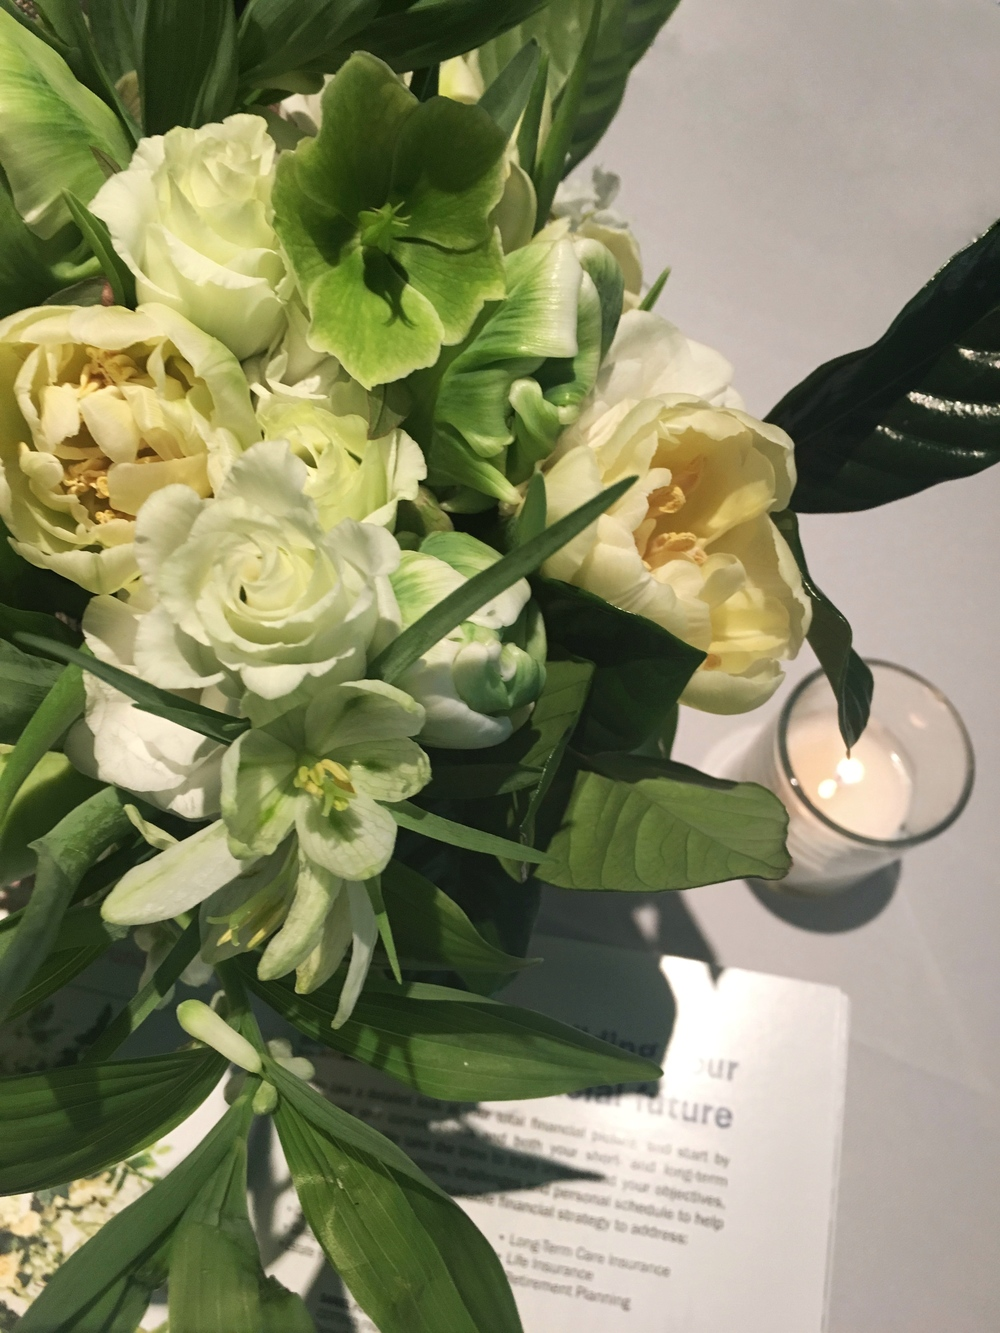 B Floral for American Ireland Fund